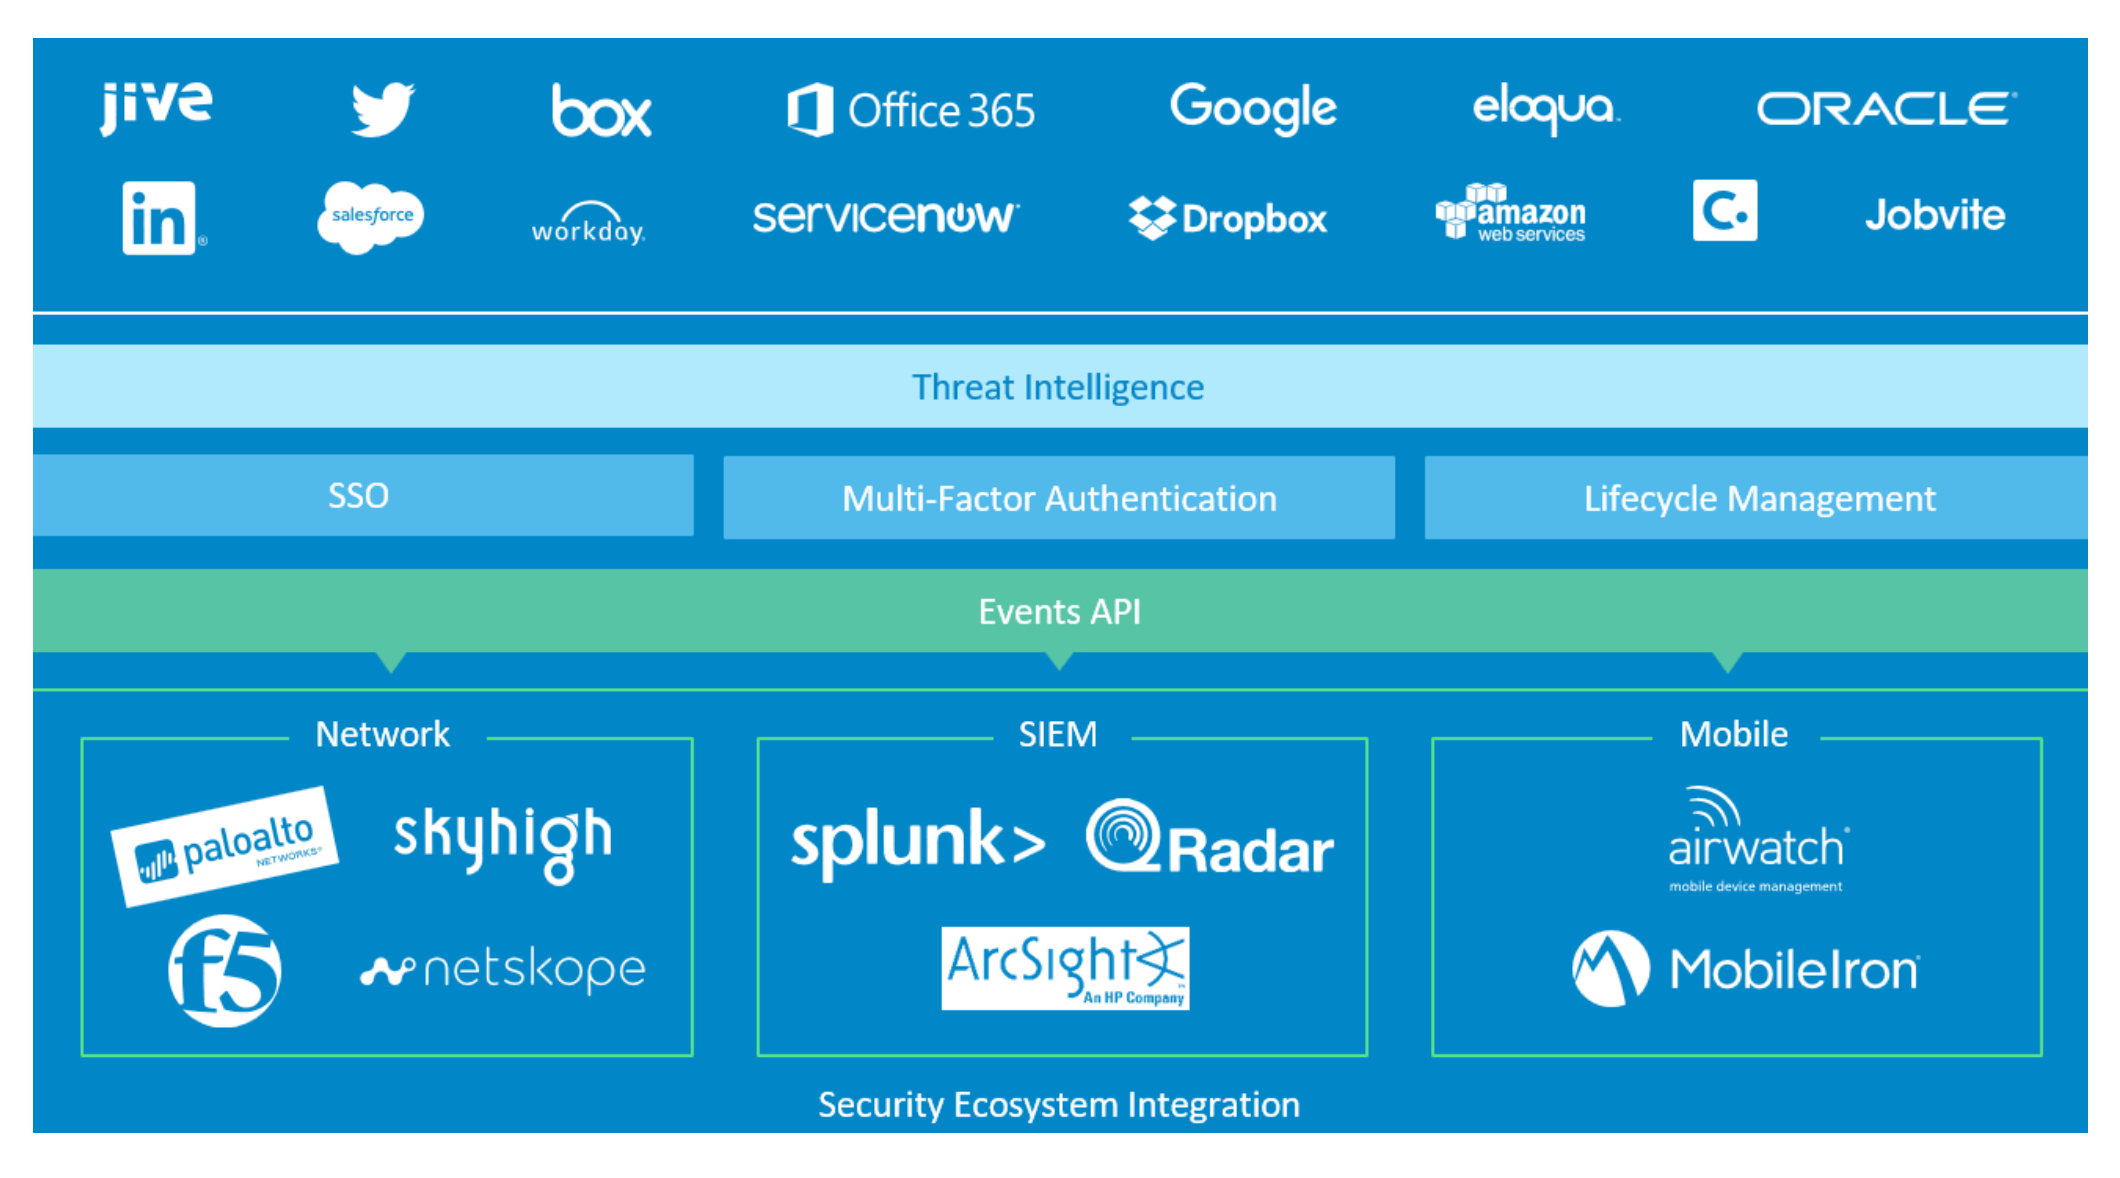 Okta's Security Ecosystem Integration